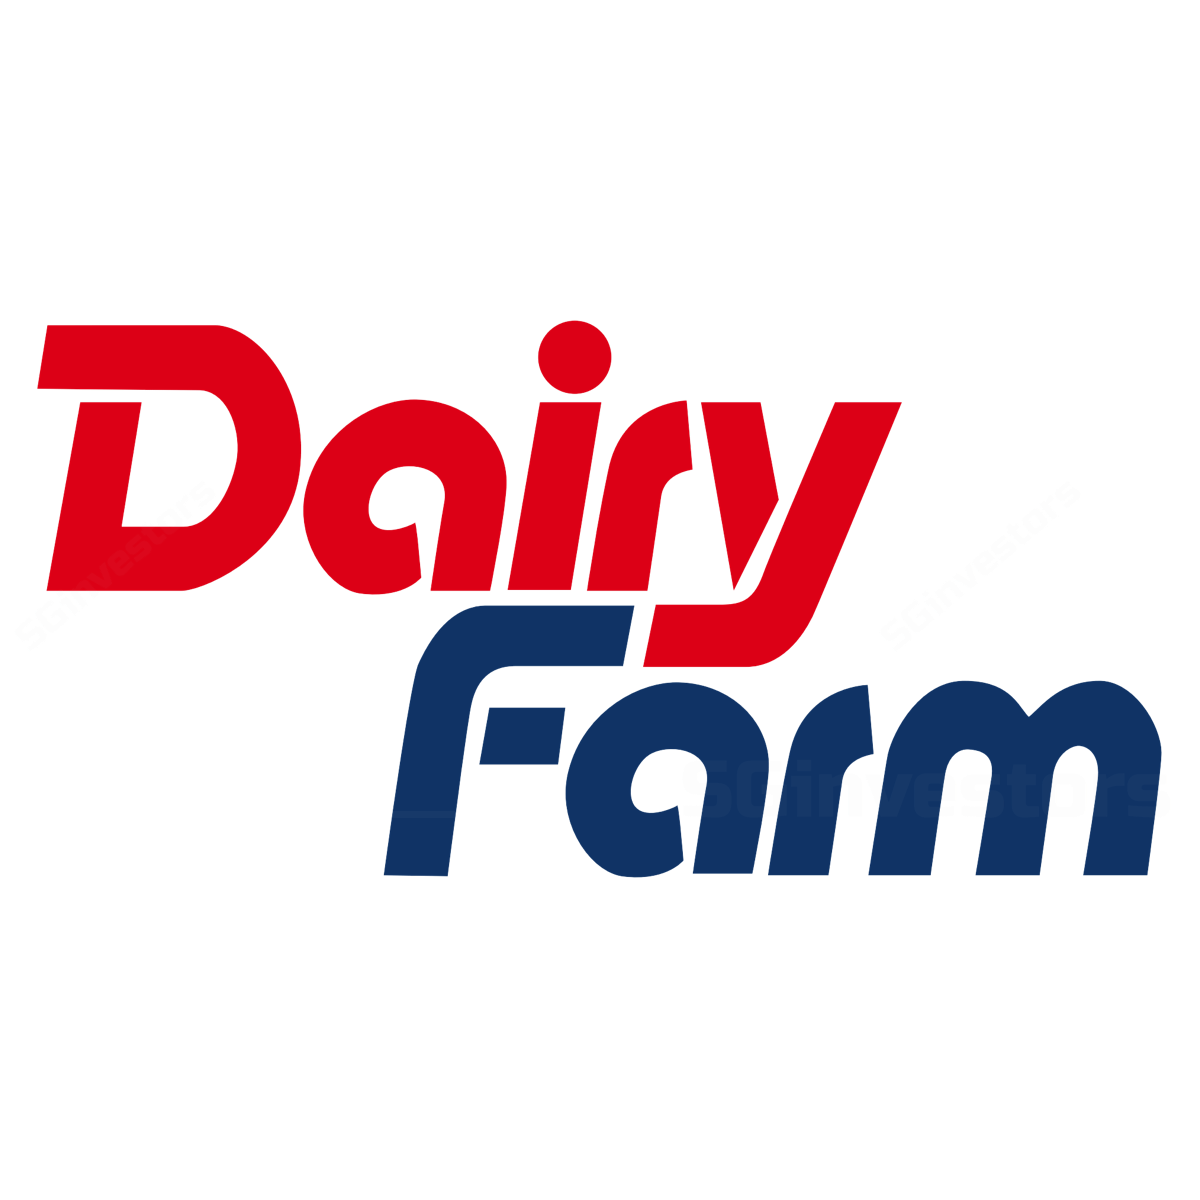 Dairy Farm - RHB Securities Research 2018-07-30: Inadequate Food To Be Healthy And Beautiful